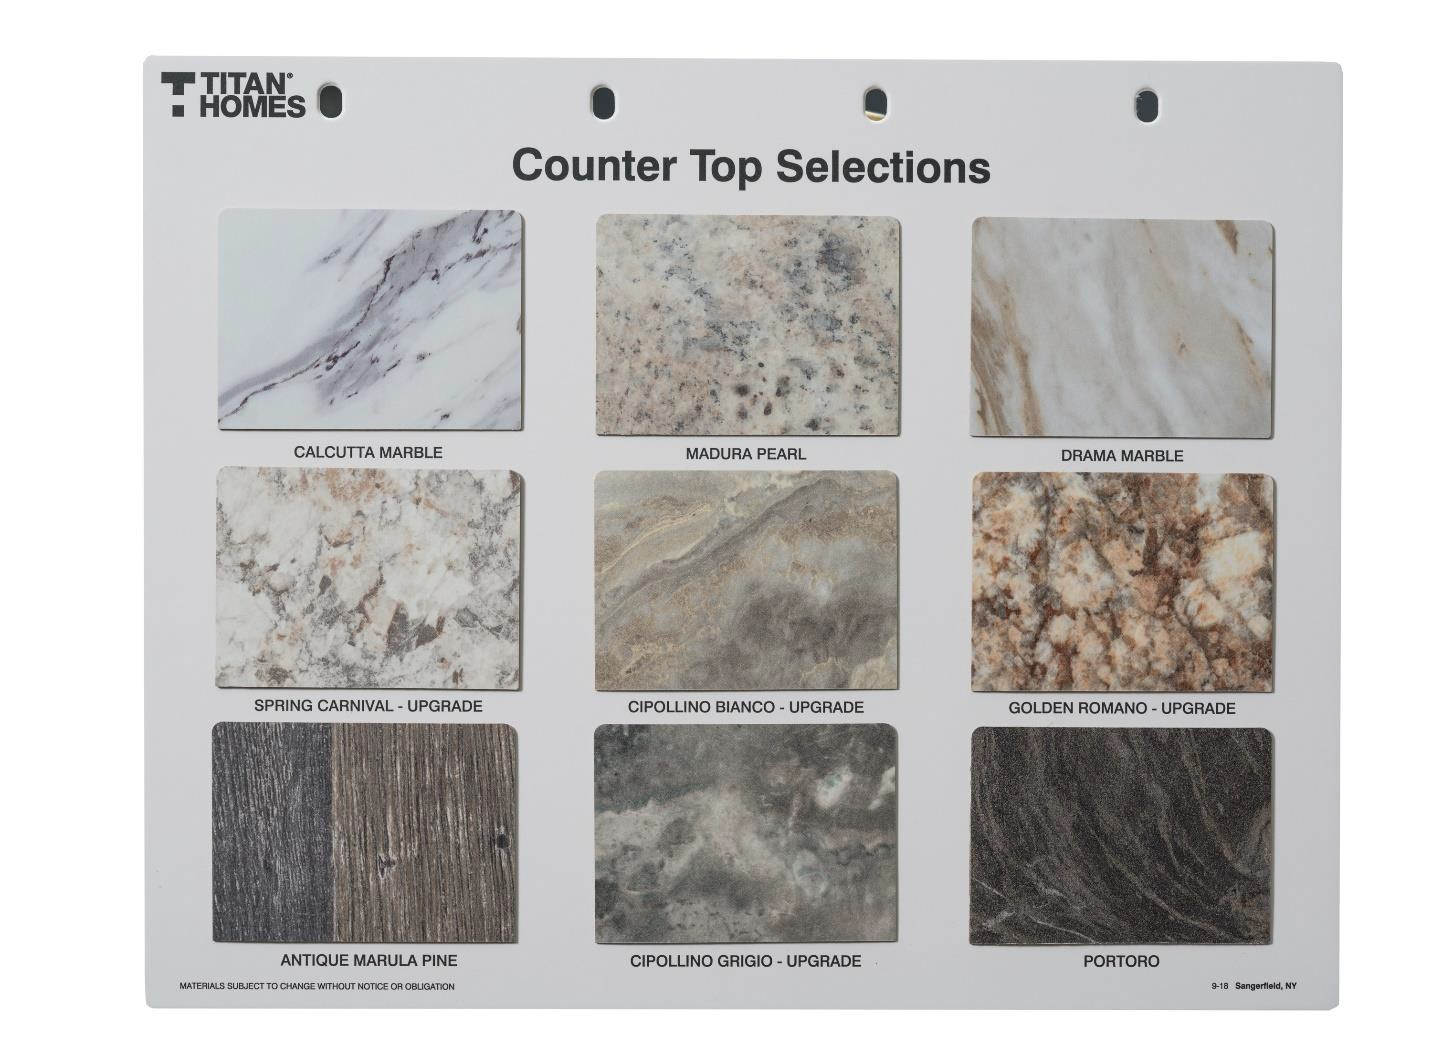 Counter Top Selections